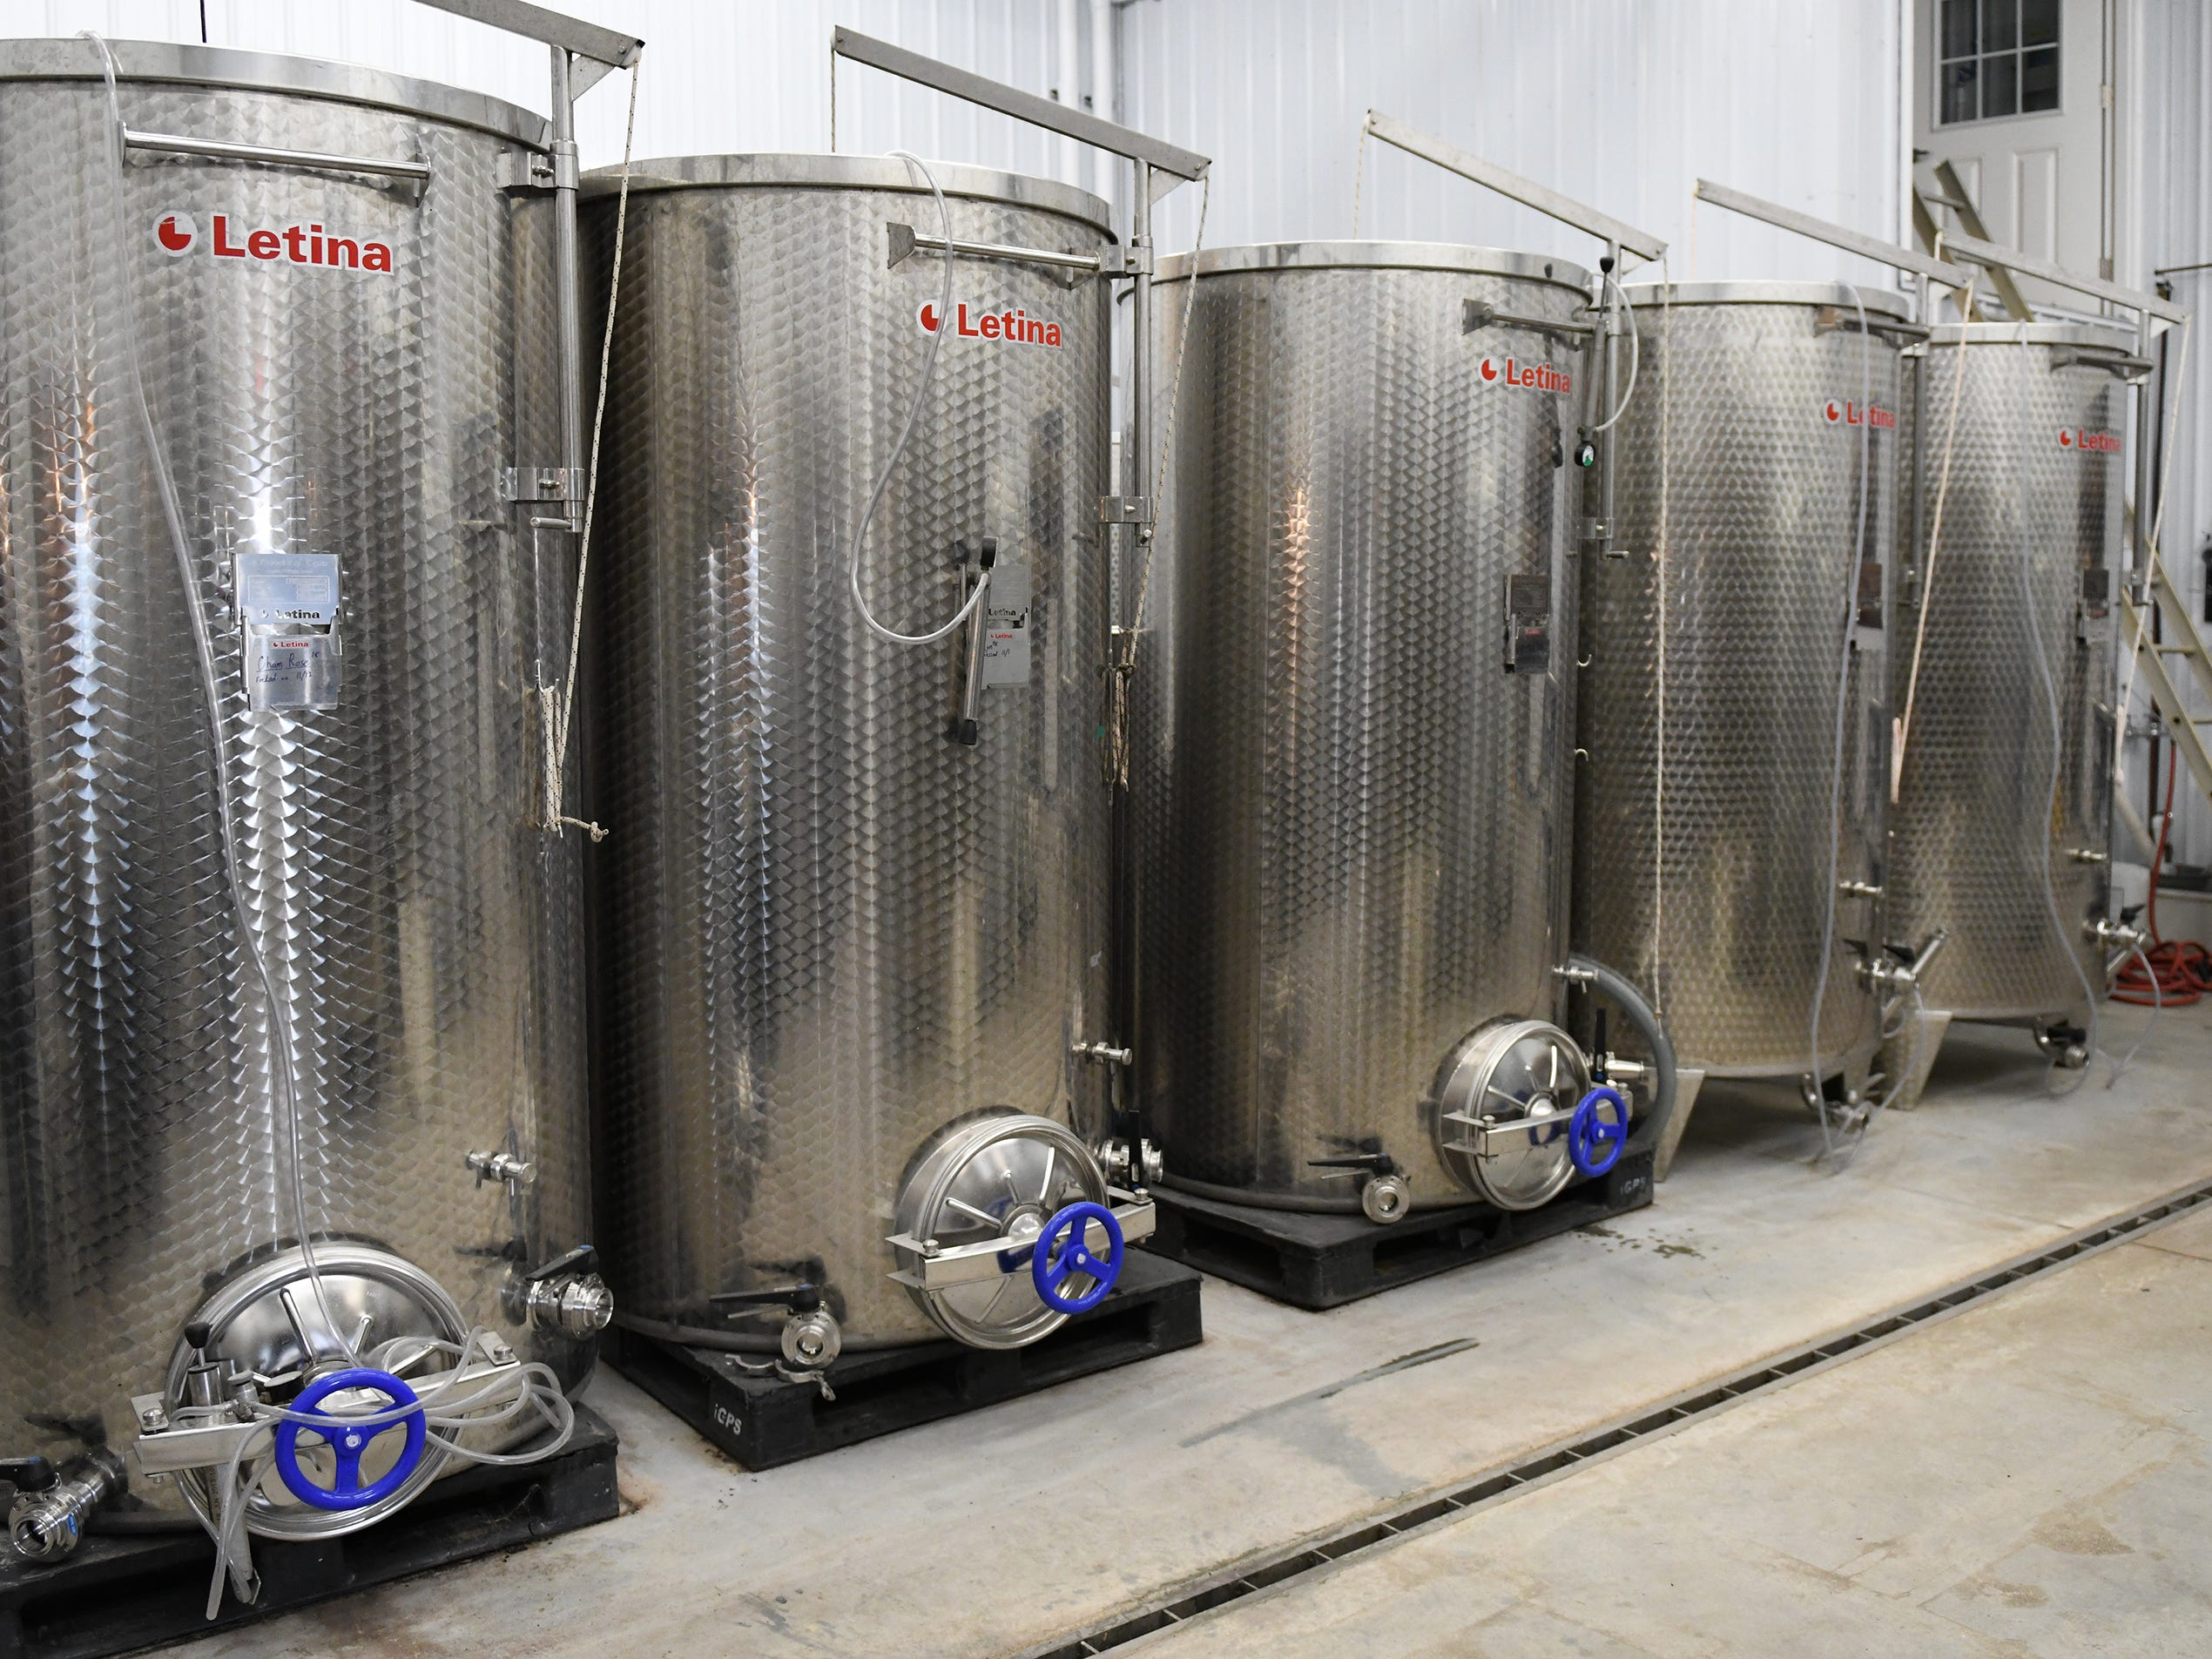 Stainless steel wine vats at Cedar Rose Vineyards in Rosenhayn on Tuesday, Jan. 8, 2019.